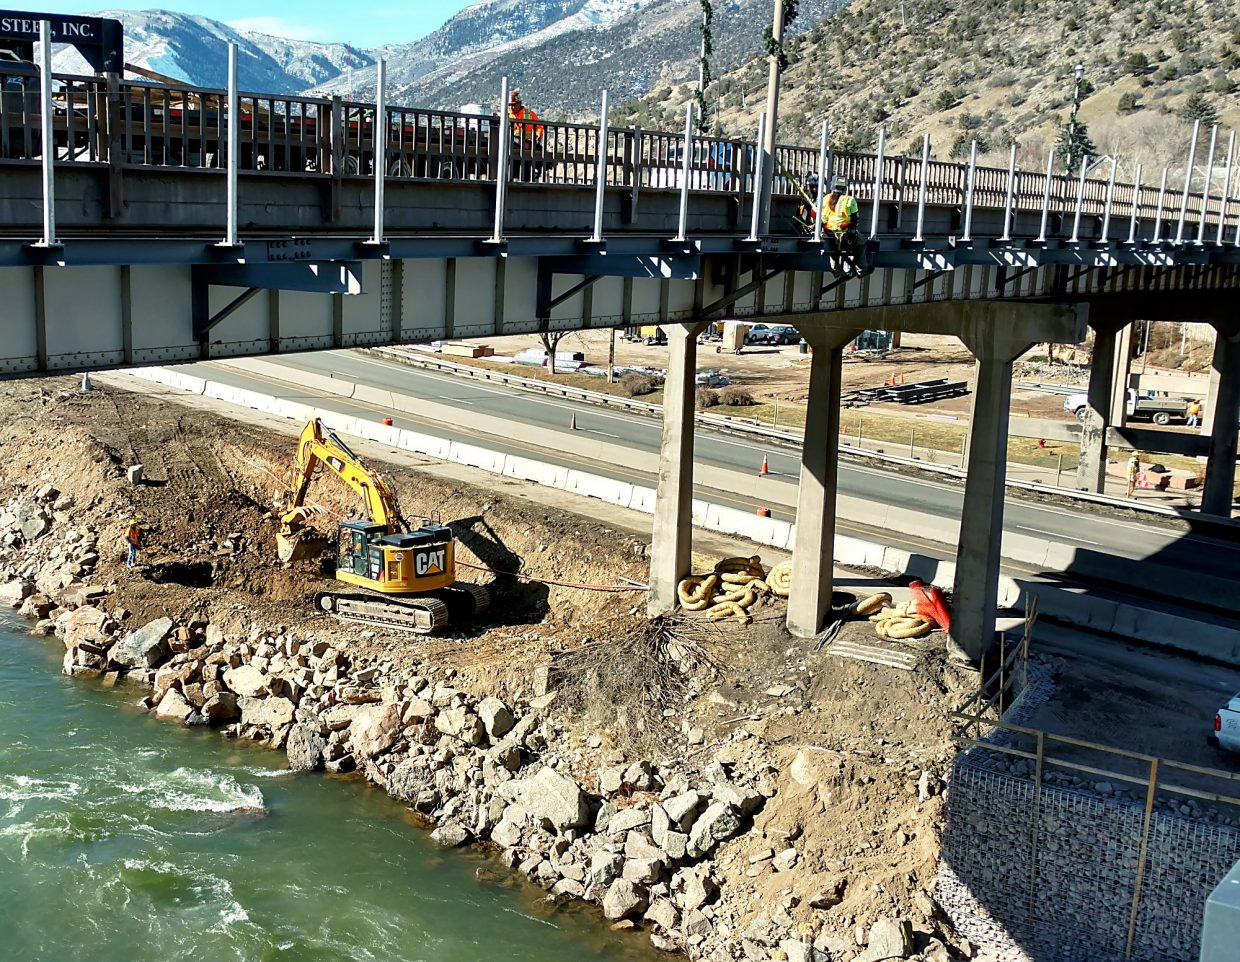 Work continued Friday in the early stages of the Grand Avenue bridge project, with bracket beams being set alongside the traffic bridge for a temporary pedestrian bridge and equipment prepping the Colorado River's banks for future work.